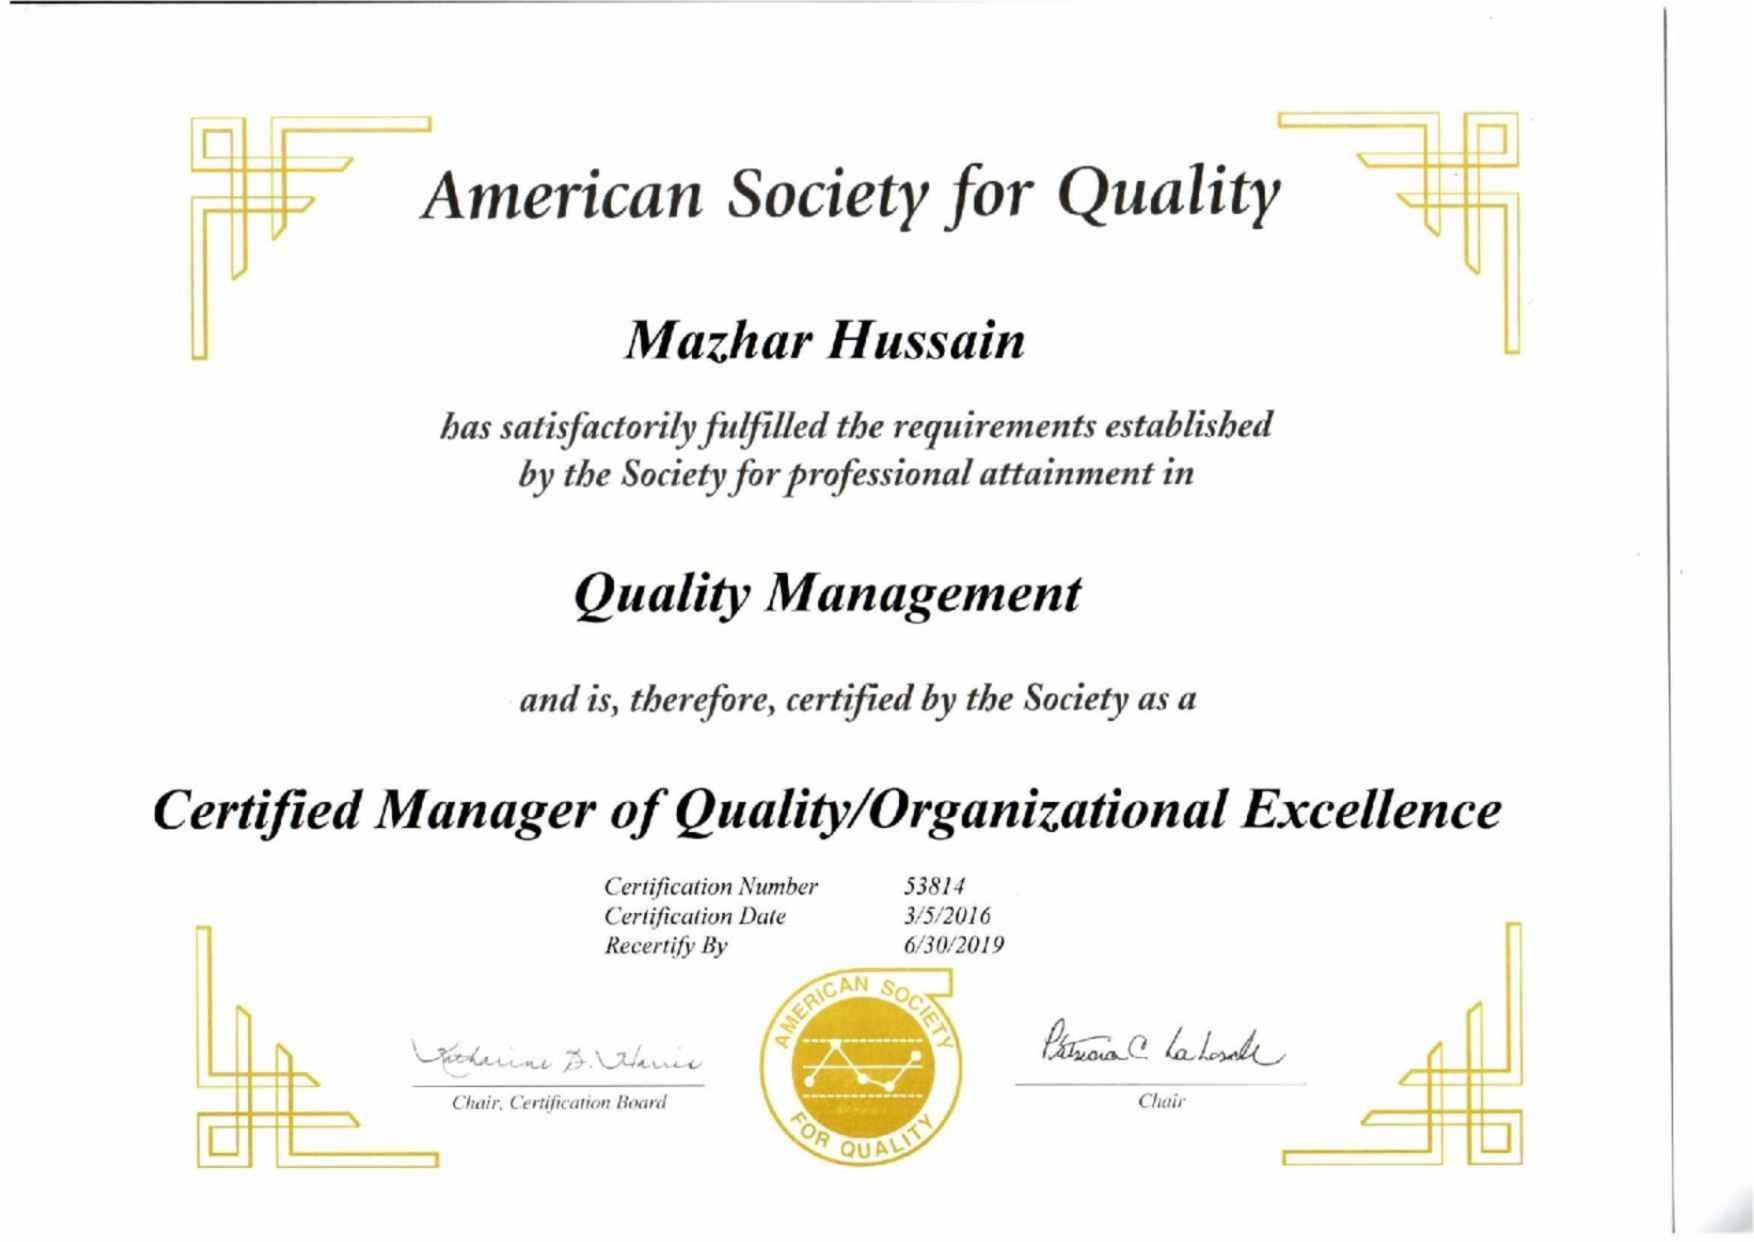 Fresh photograph of asq certification business cards and resume asq certification image source calsolutionsz mazhar hussain bayt 1betcityfo Image collections